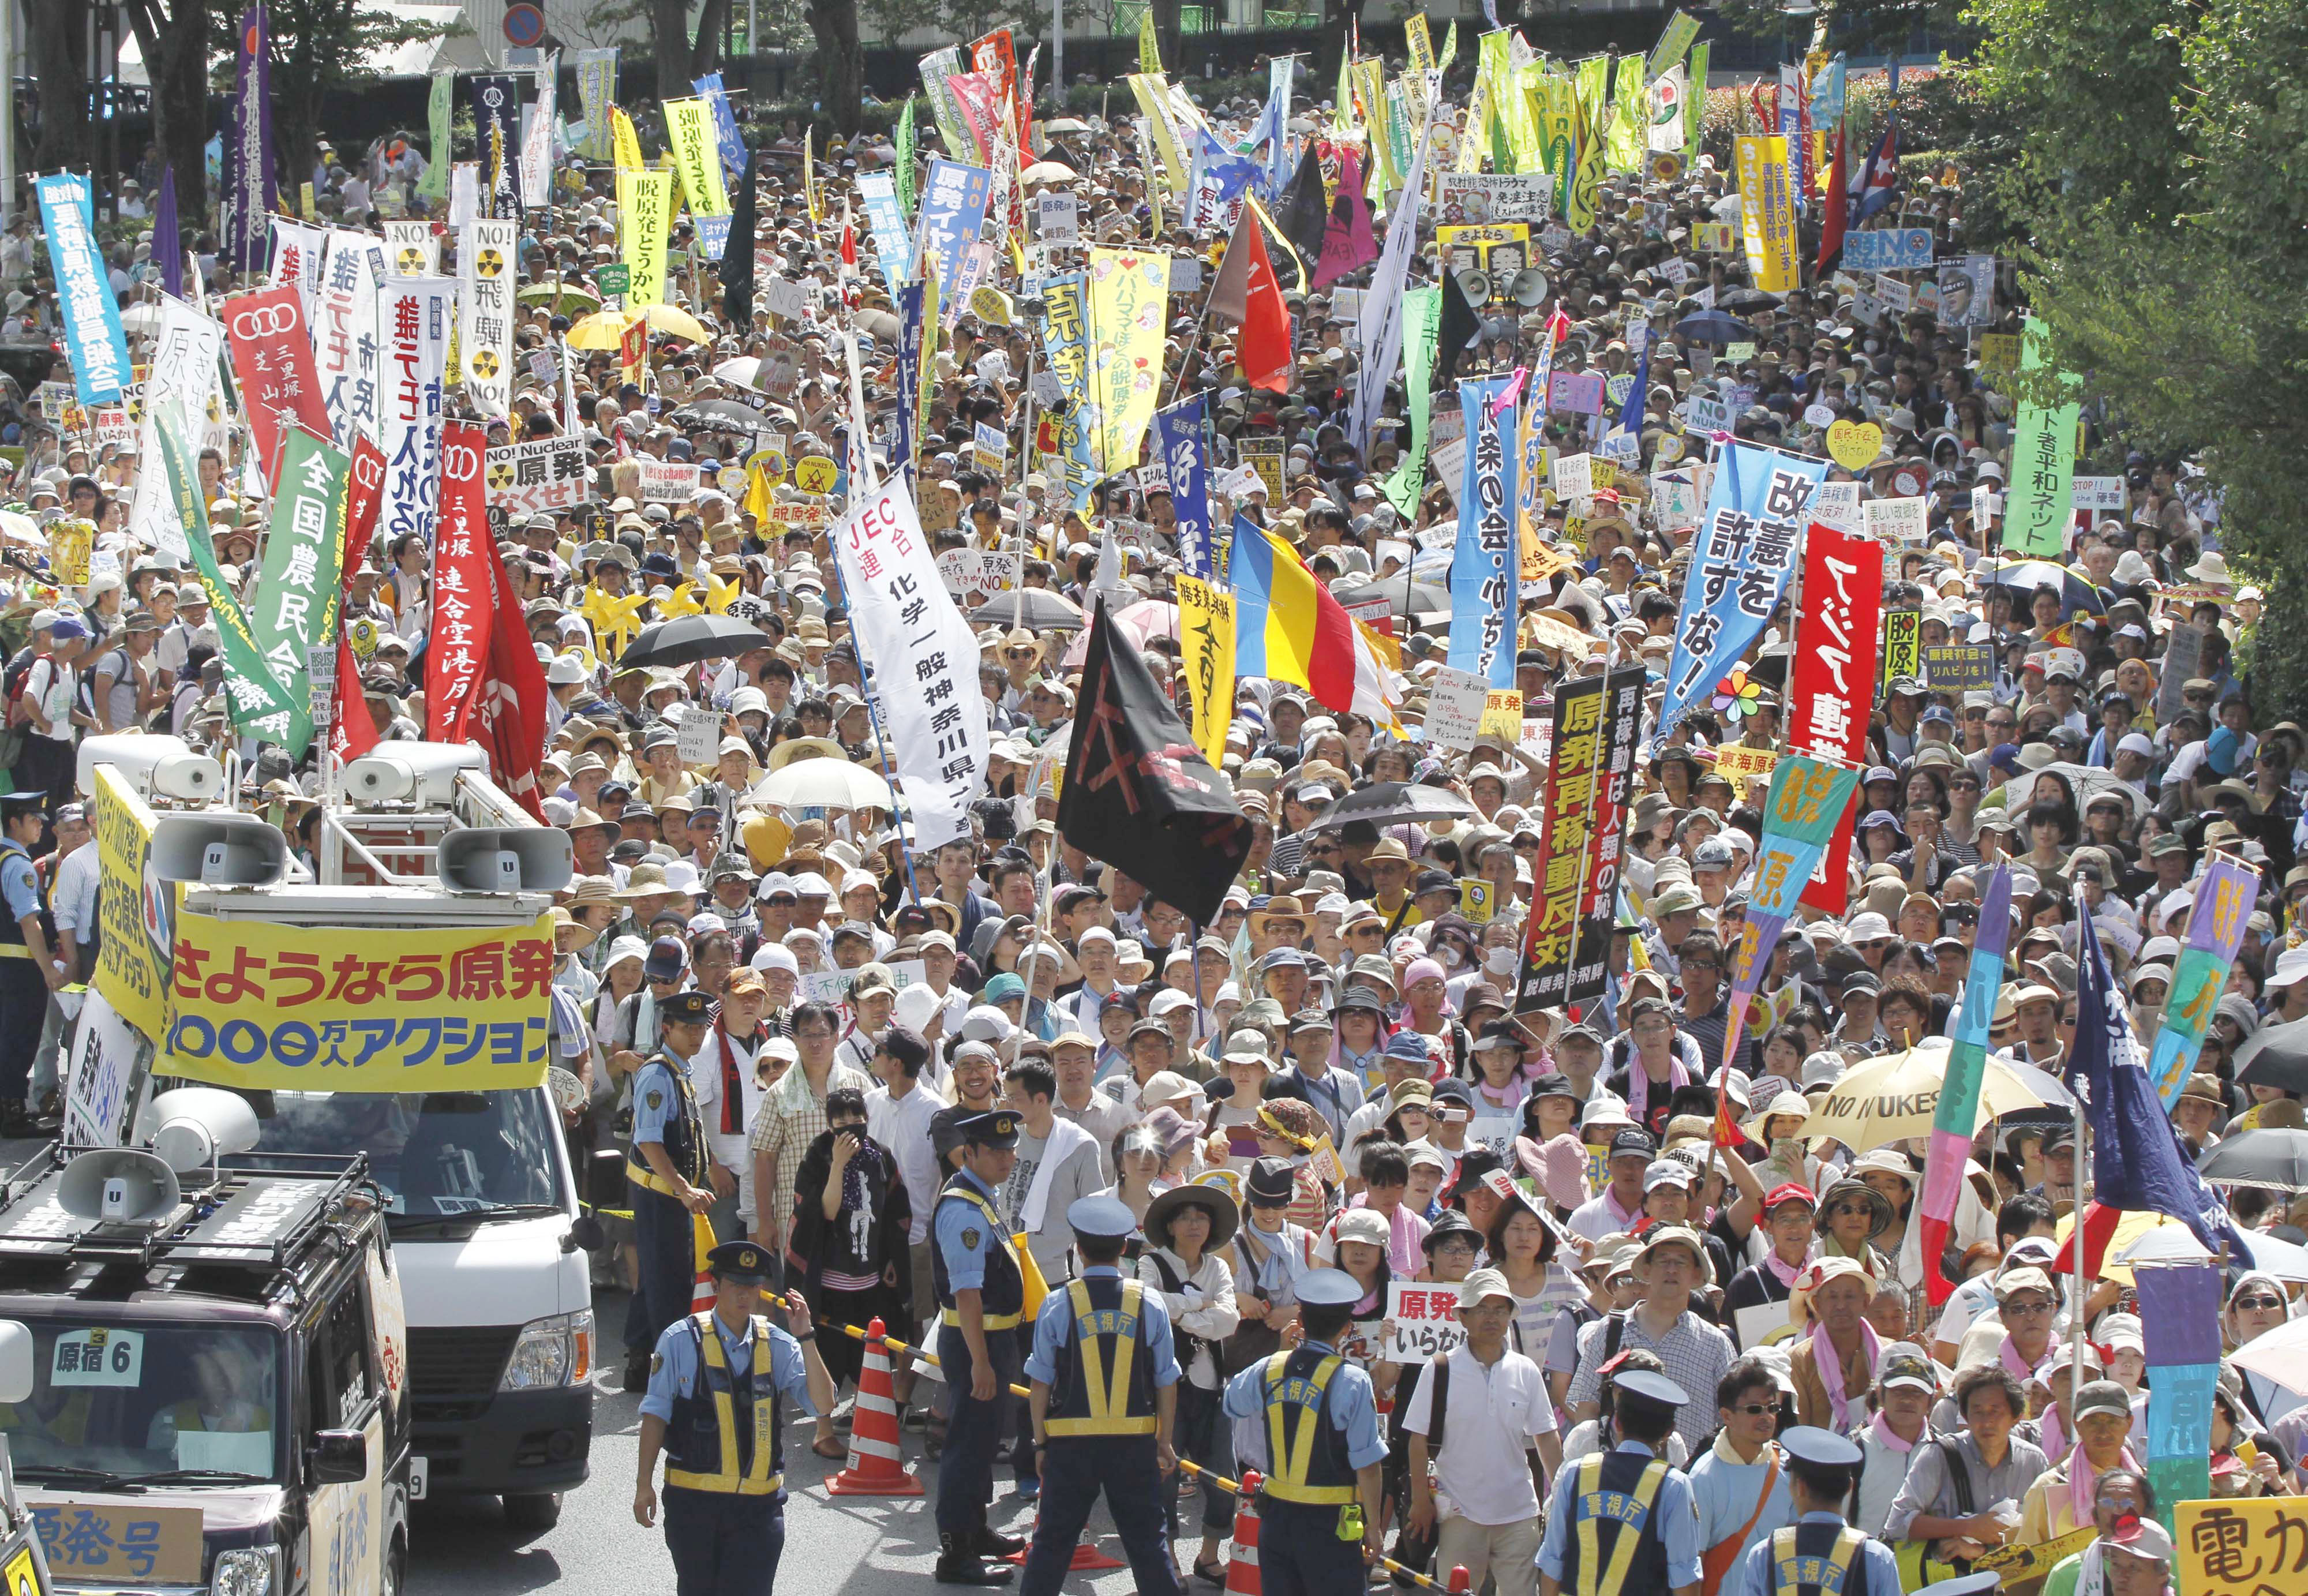 Anti-nuclear protest in Yoyogi Park in Tokyo in July 2012. The Japanese anti-nuclear movement in summer of 2012, one year after the Fukushima disaster, saw tens of thousands protest in the largest set of demonstrations that Japan had seen since the 1960s.